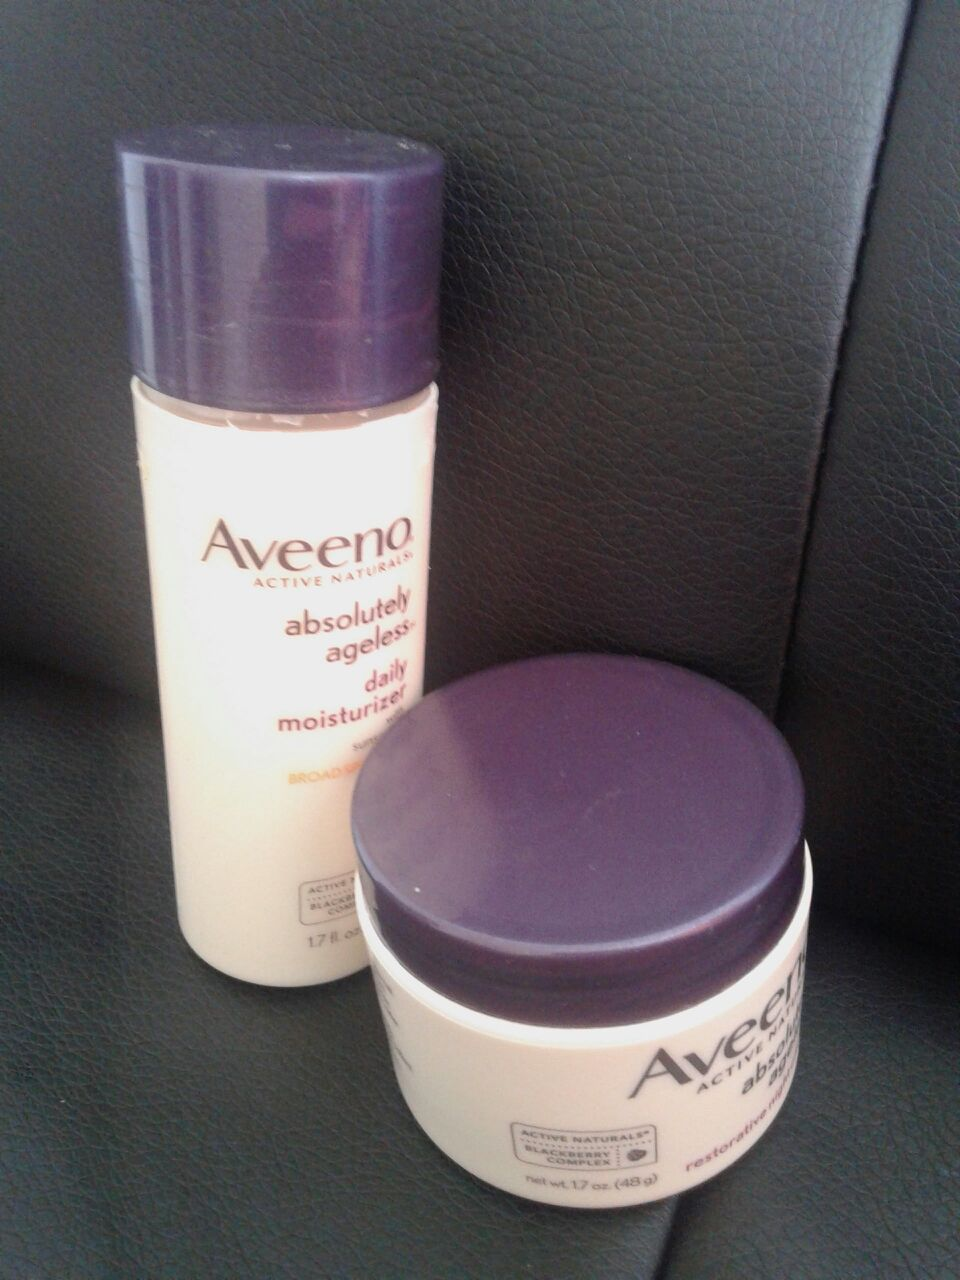 Aveeno Active Naturals Positively Ageless Night Cream with Natural Shiitake Complex uploaded by syamala r.